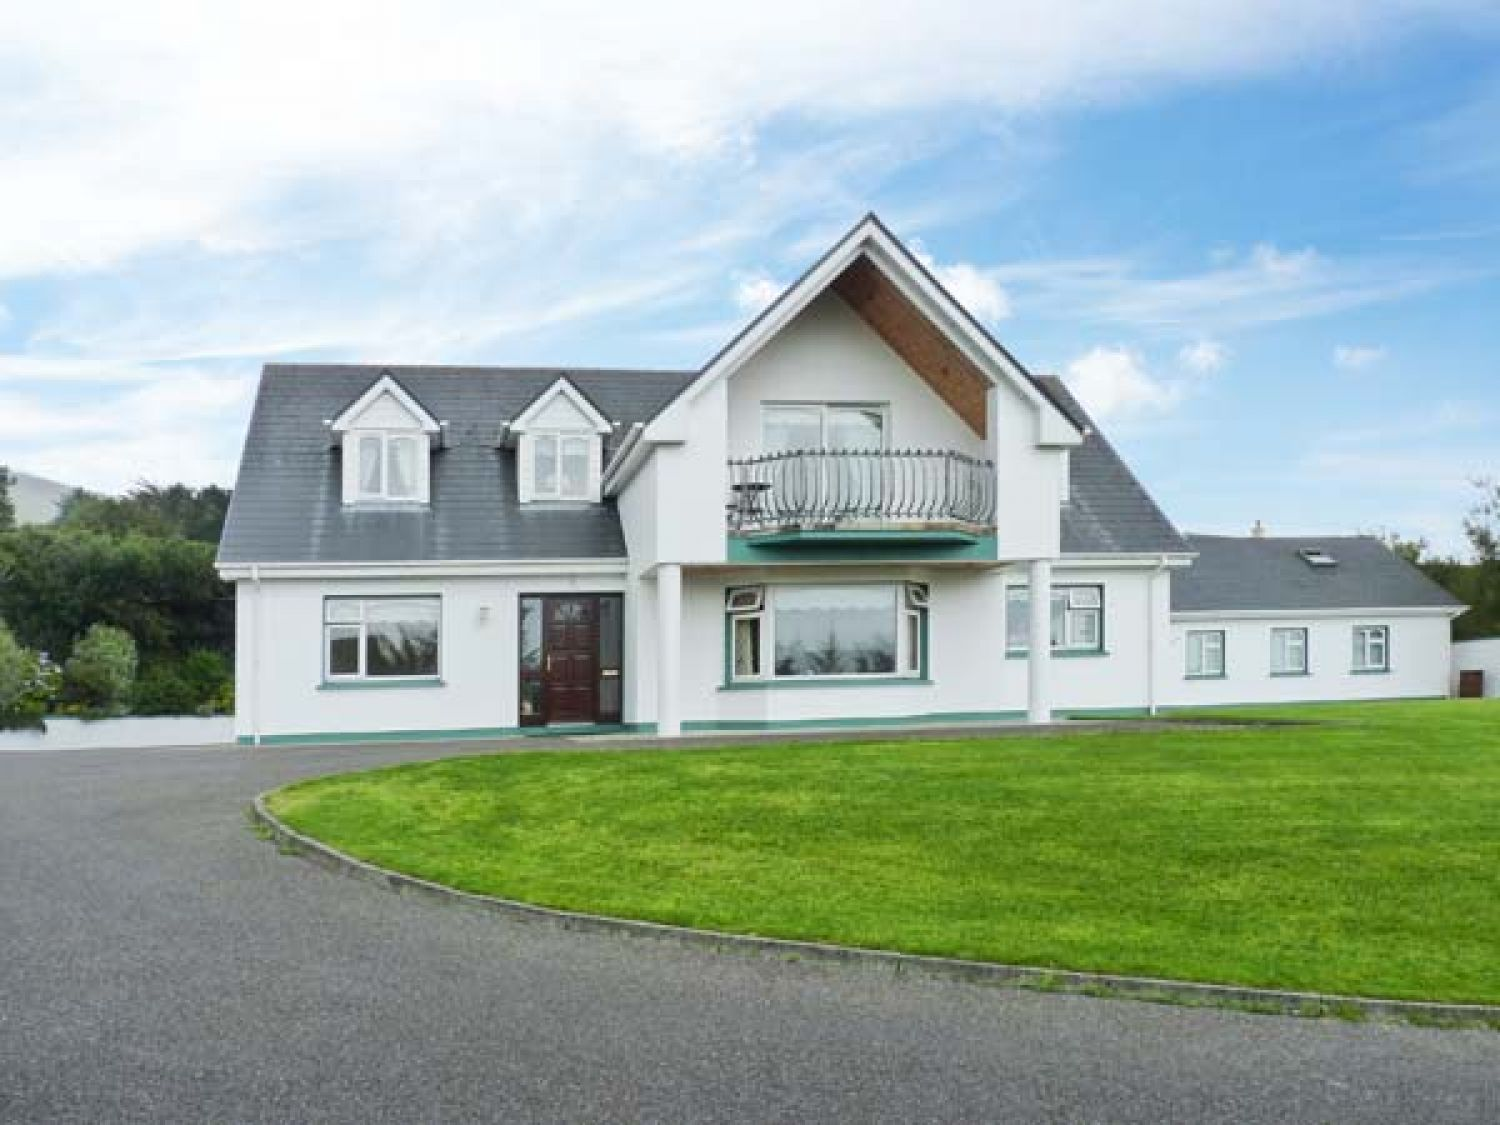 17 St Michael's Crescent - County Kerry - 28477 - photo 1